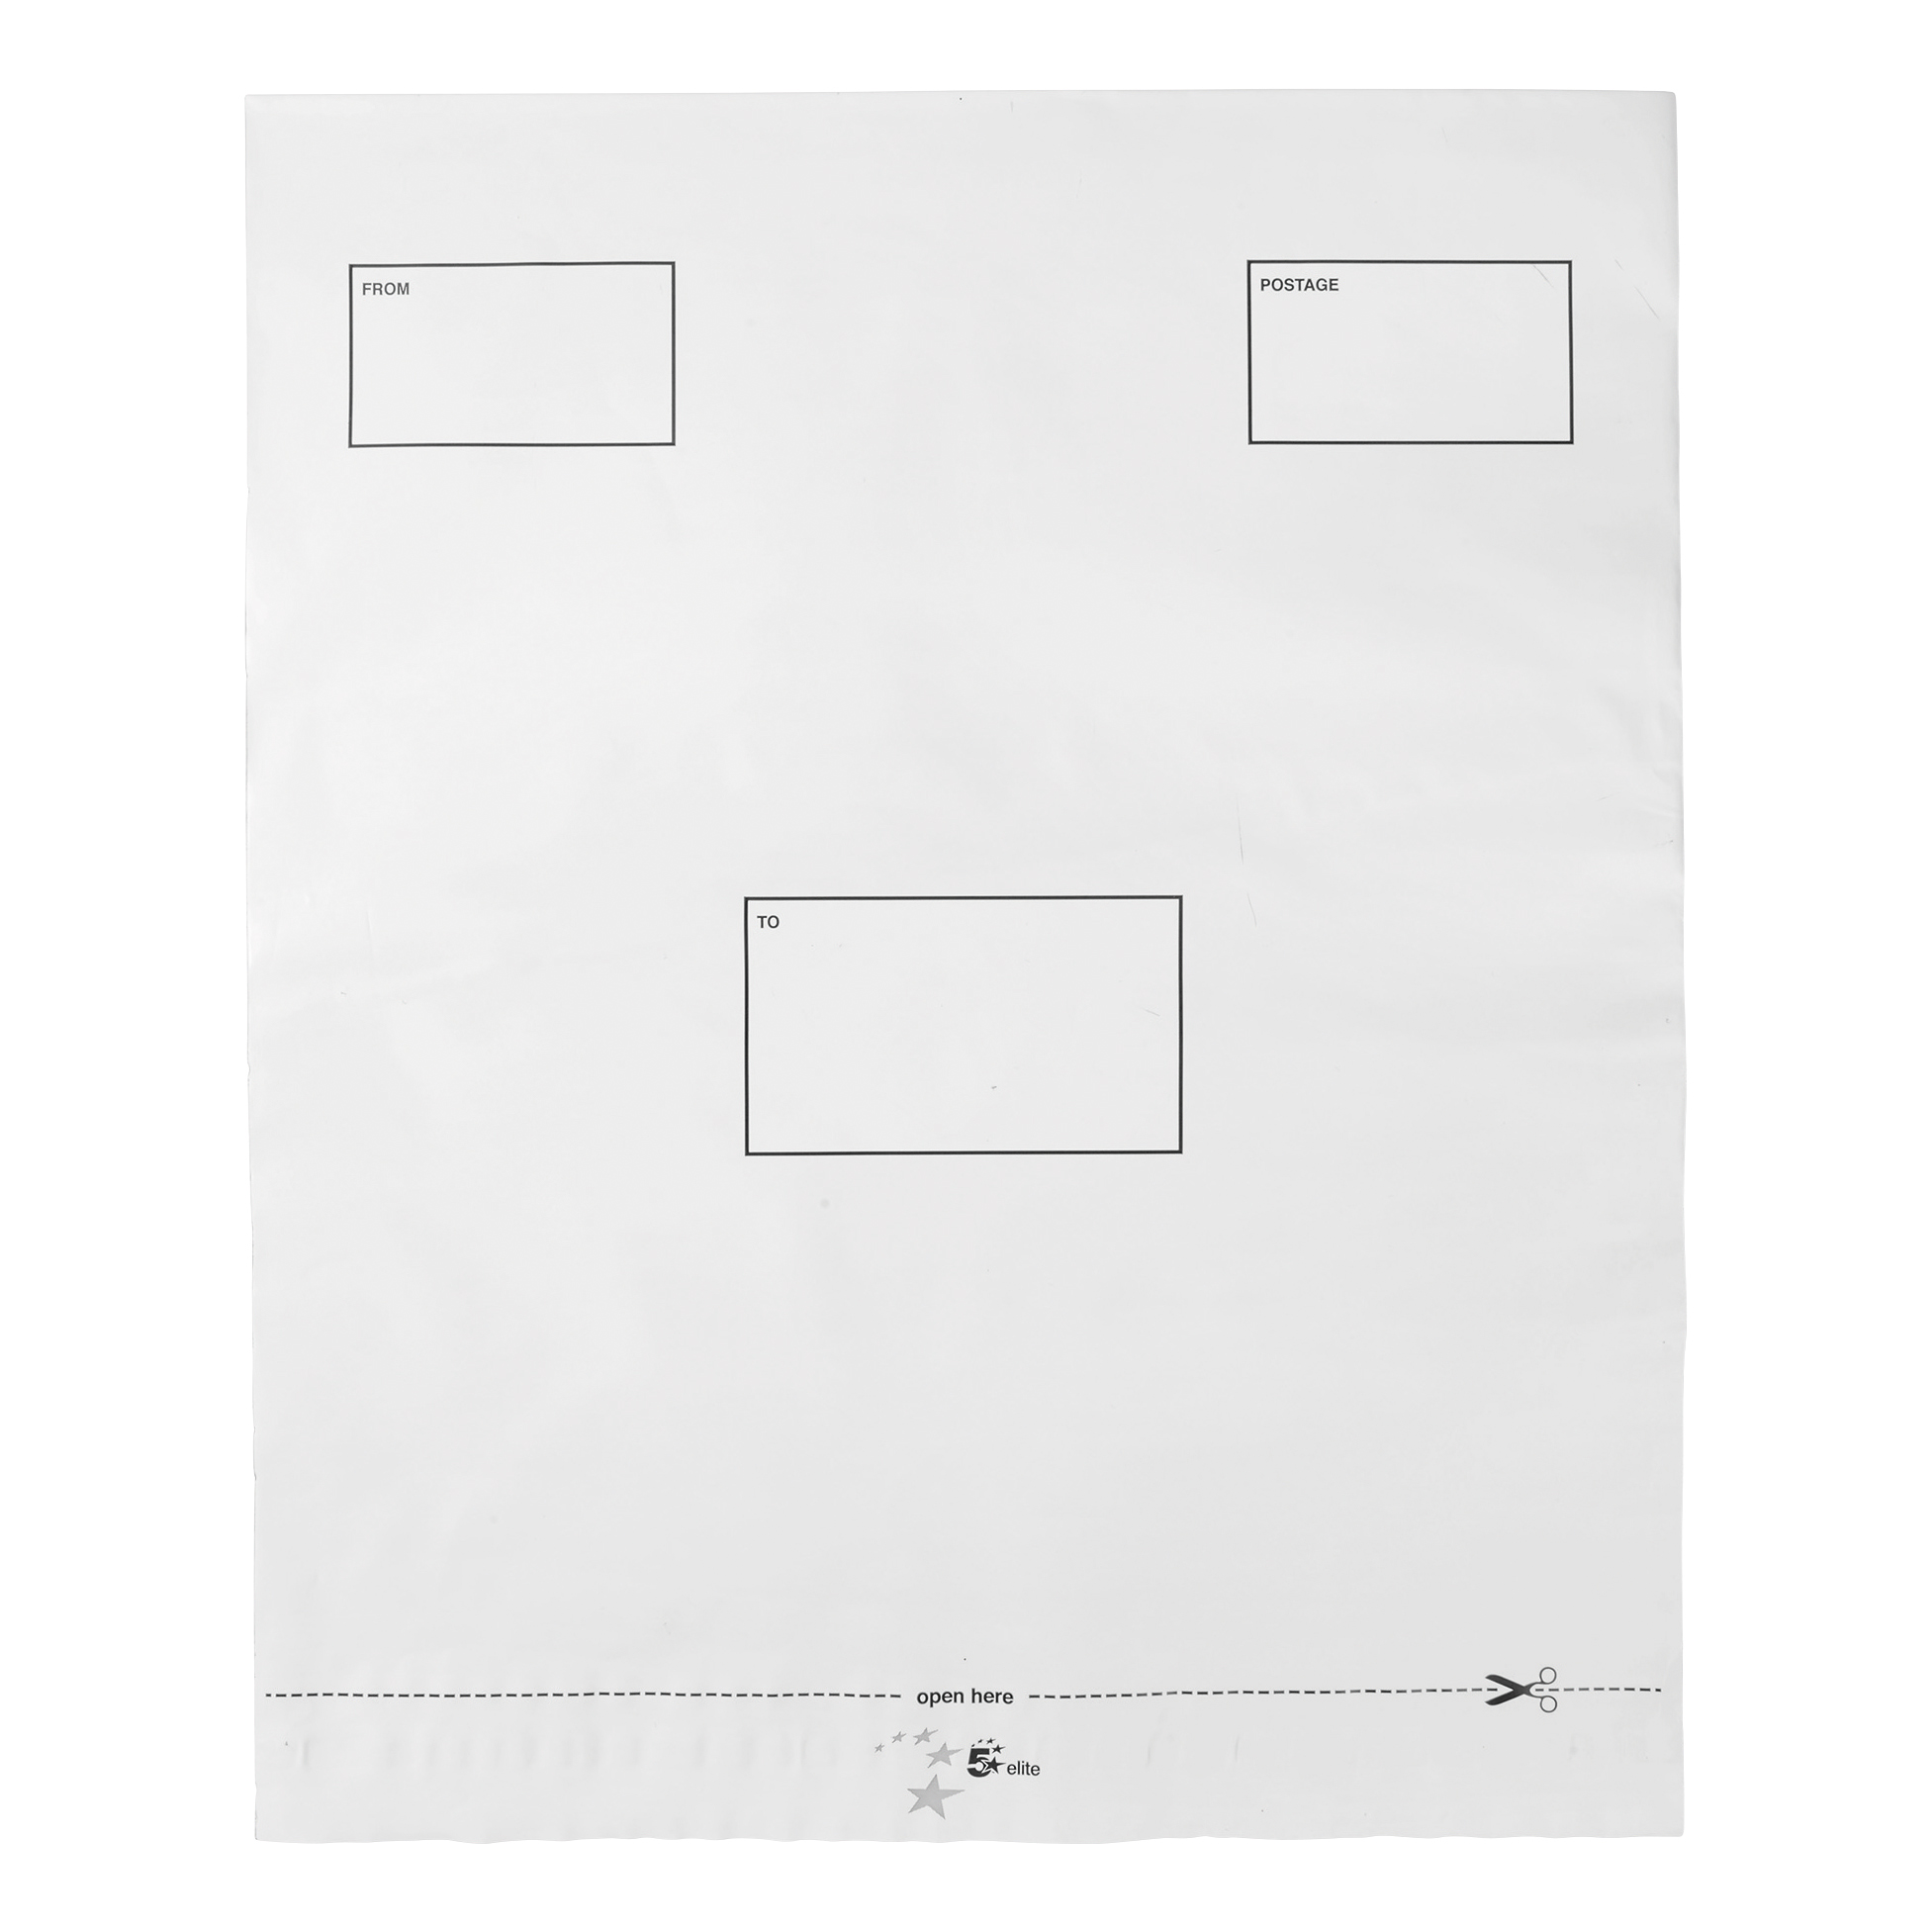 Polythene Envelopes 5 Star Elite DX Bags Self Seal Waterproof White 395x430mm &50mm Flap [Pack 100]